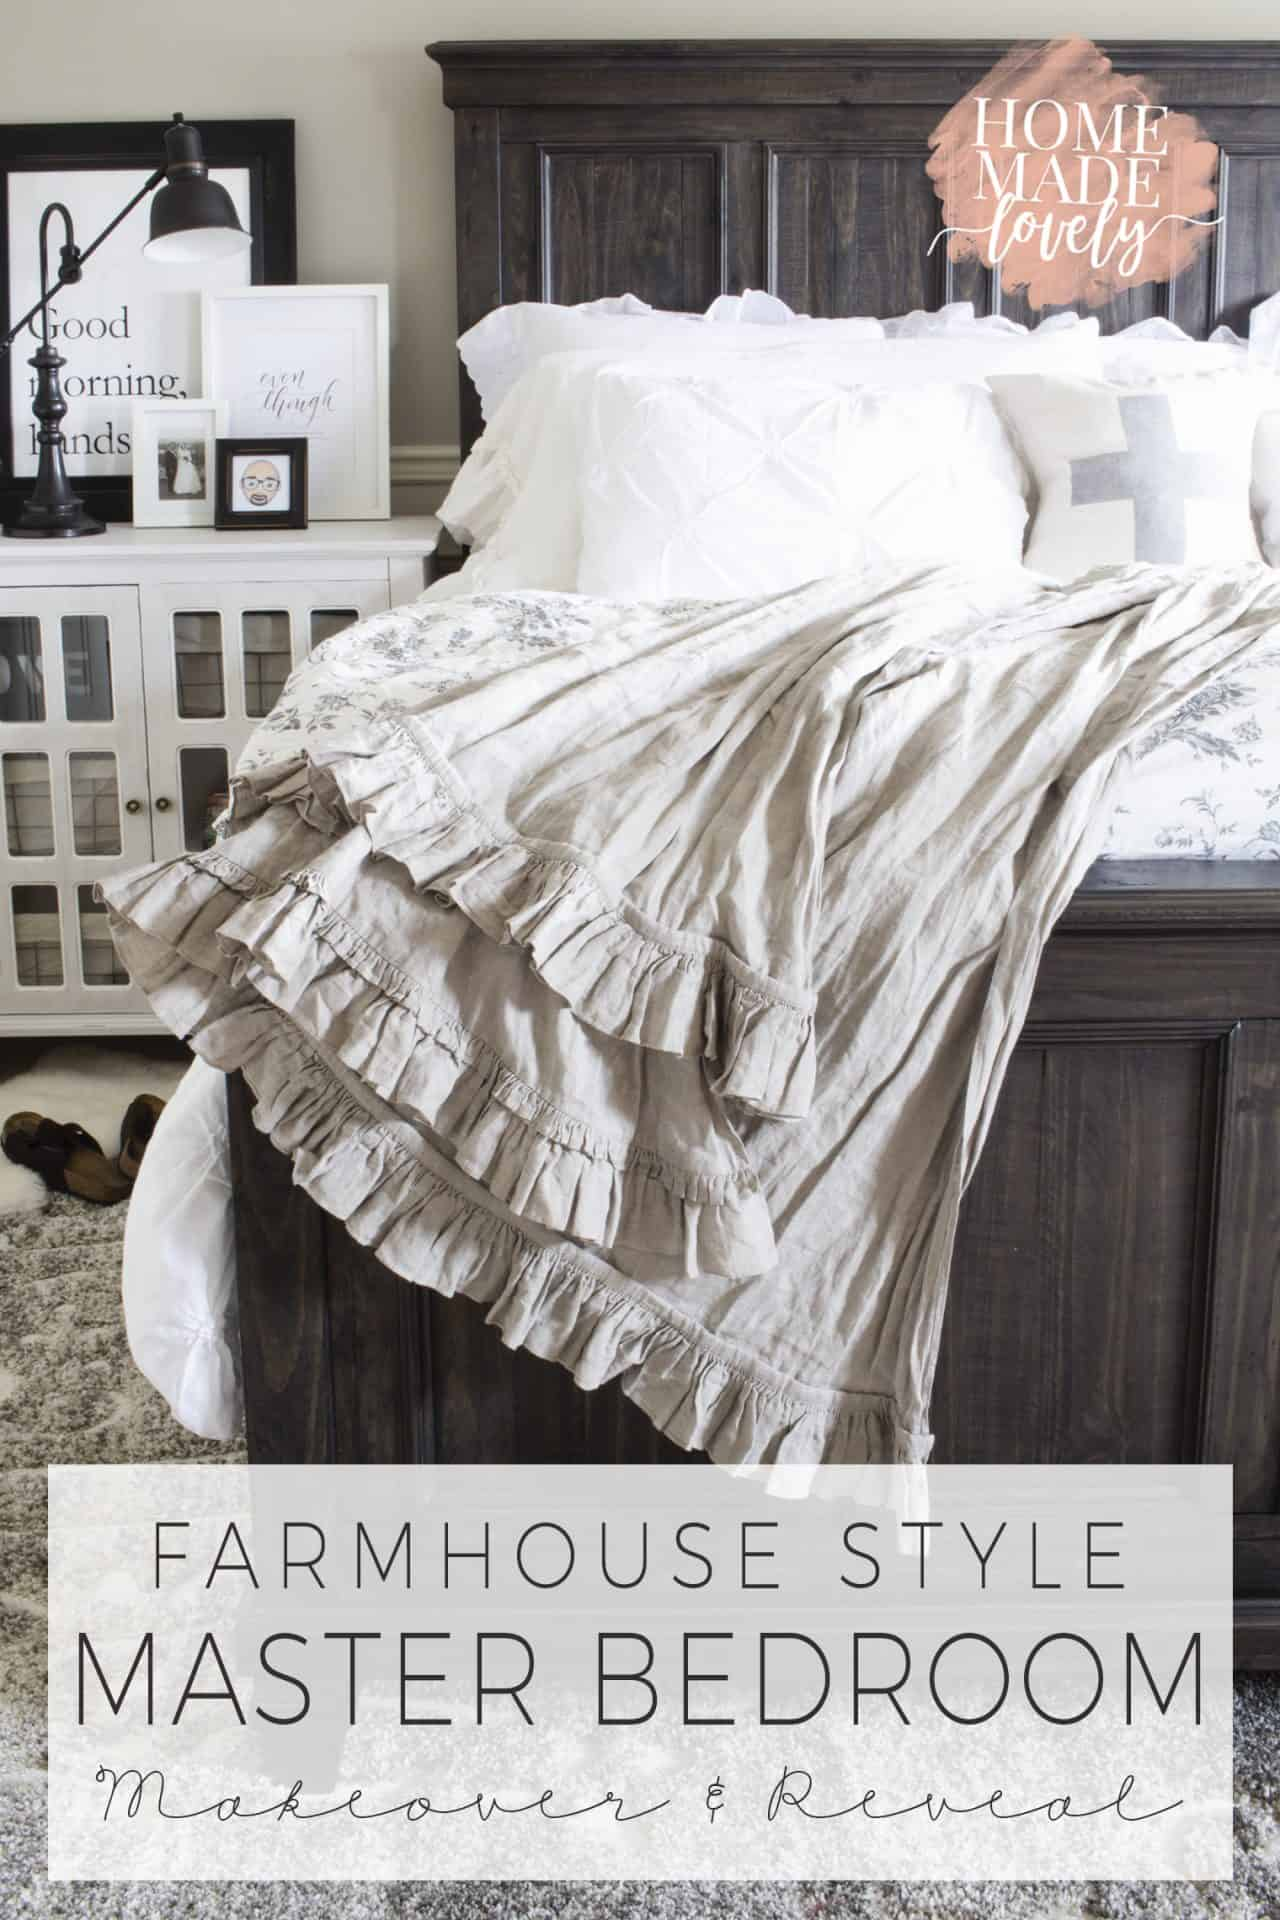 Farmhouse Style Master Bedroom Makeover Reveal